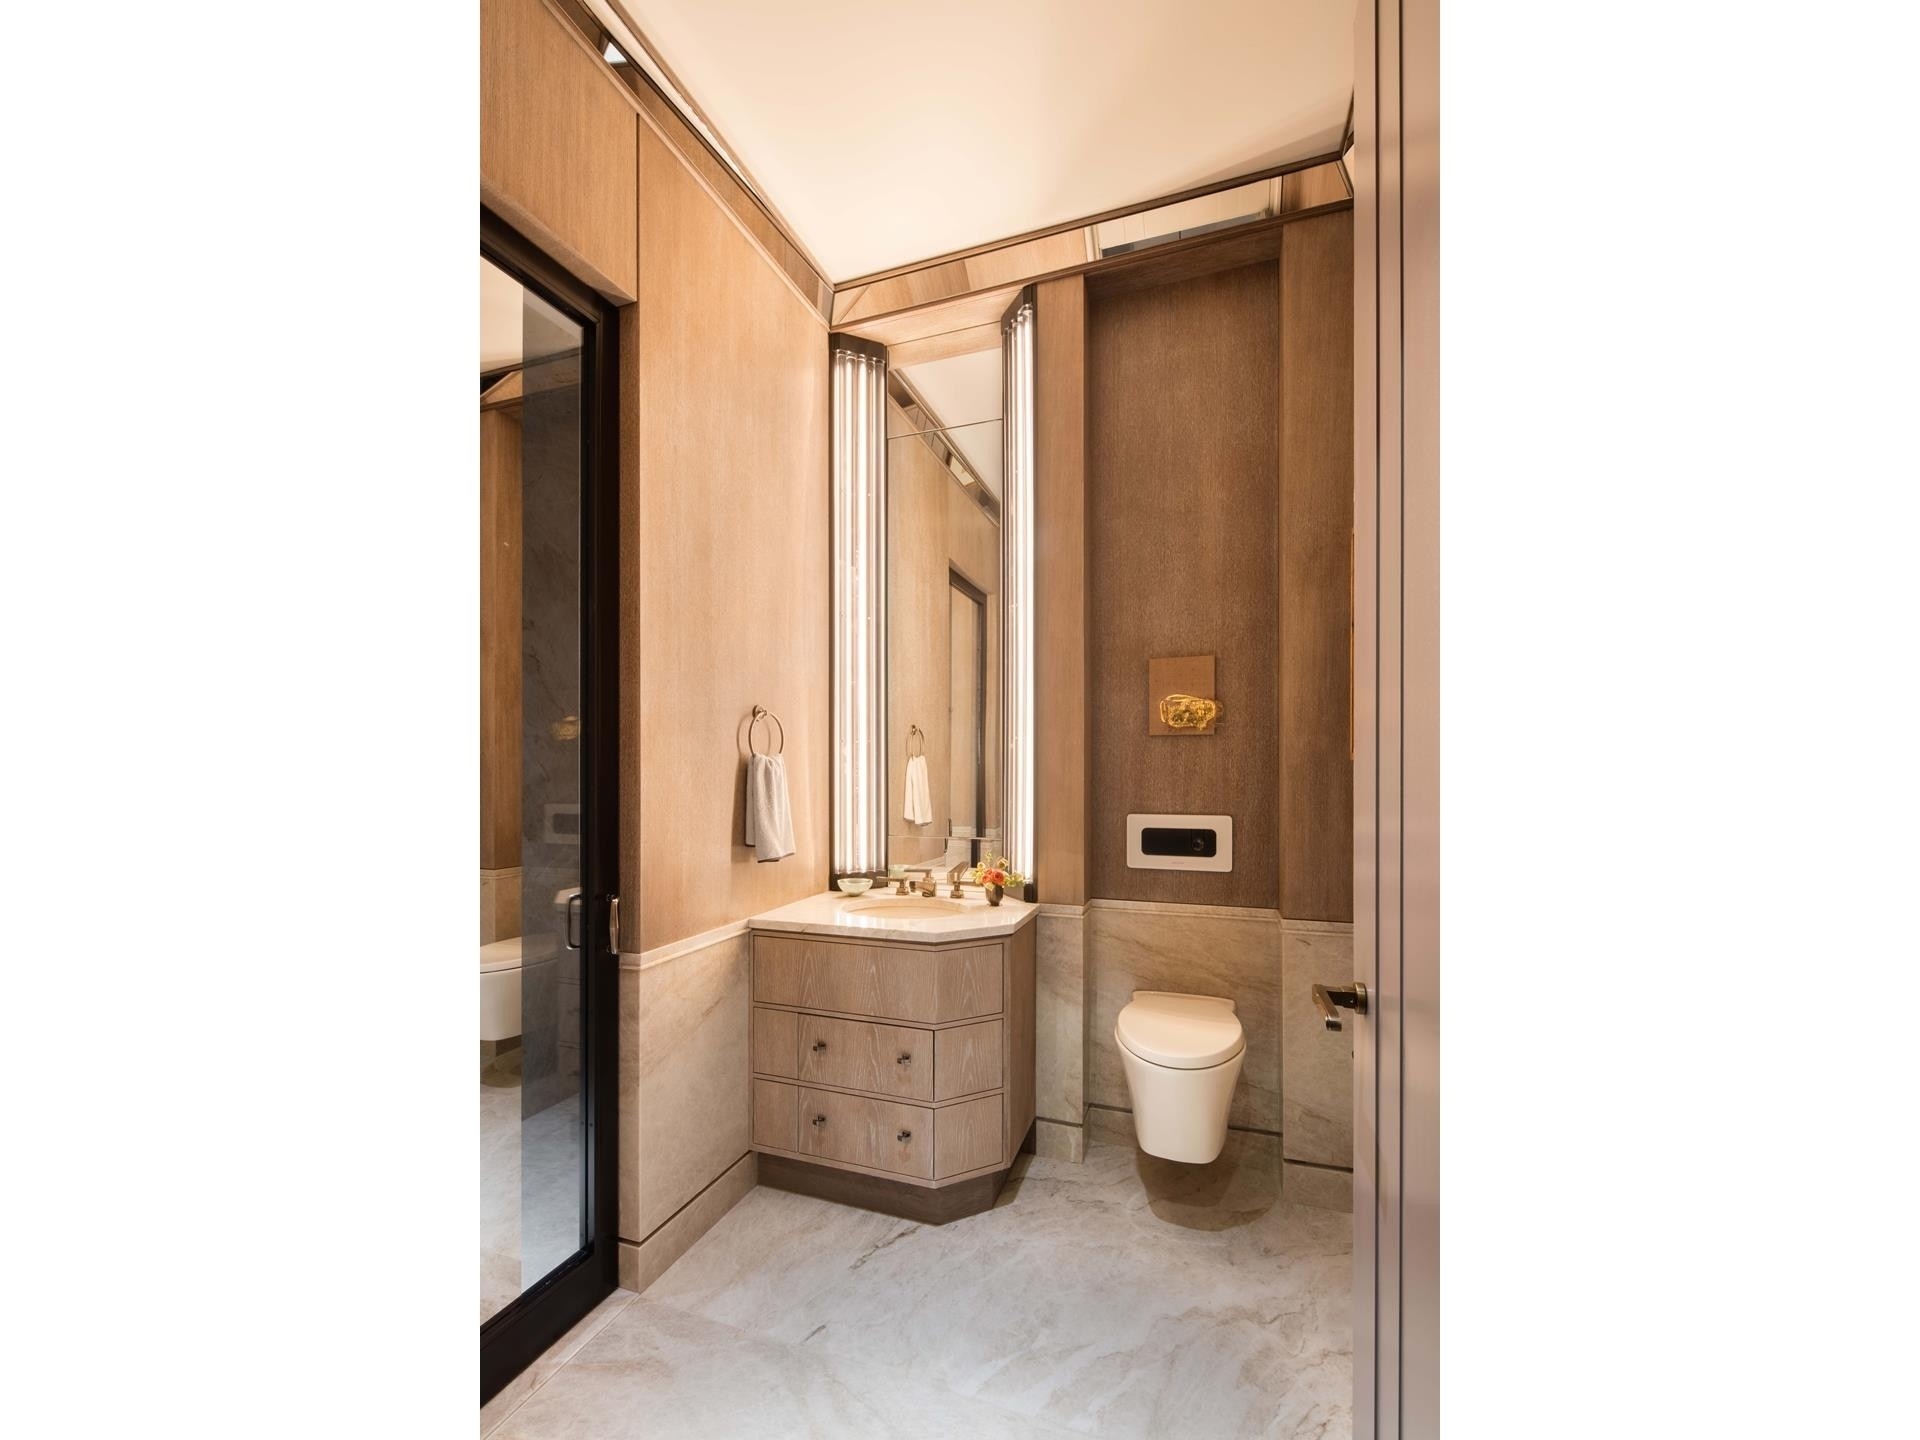 9. Condominiums for Sale at 111 W 57TH ST , 55 Midtown West, New York, NY 10019